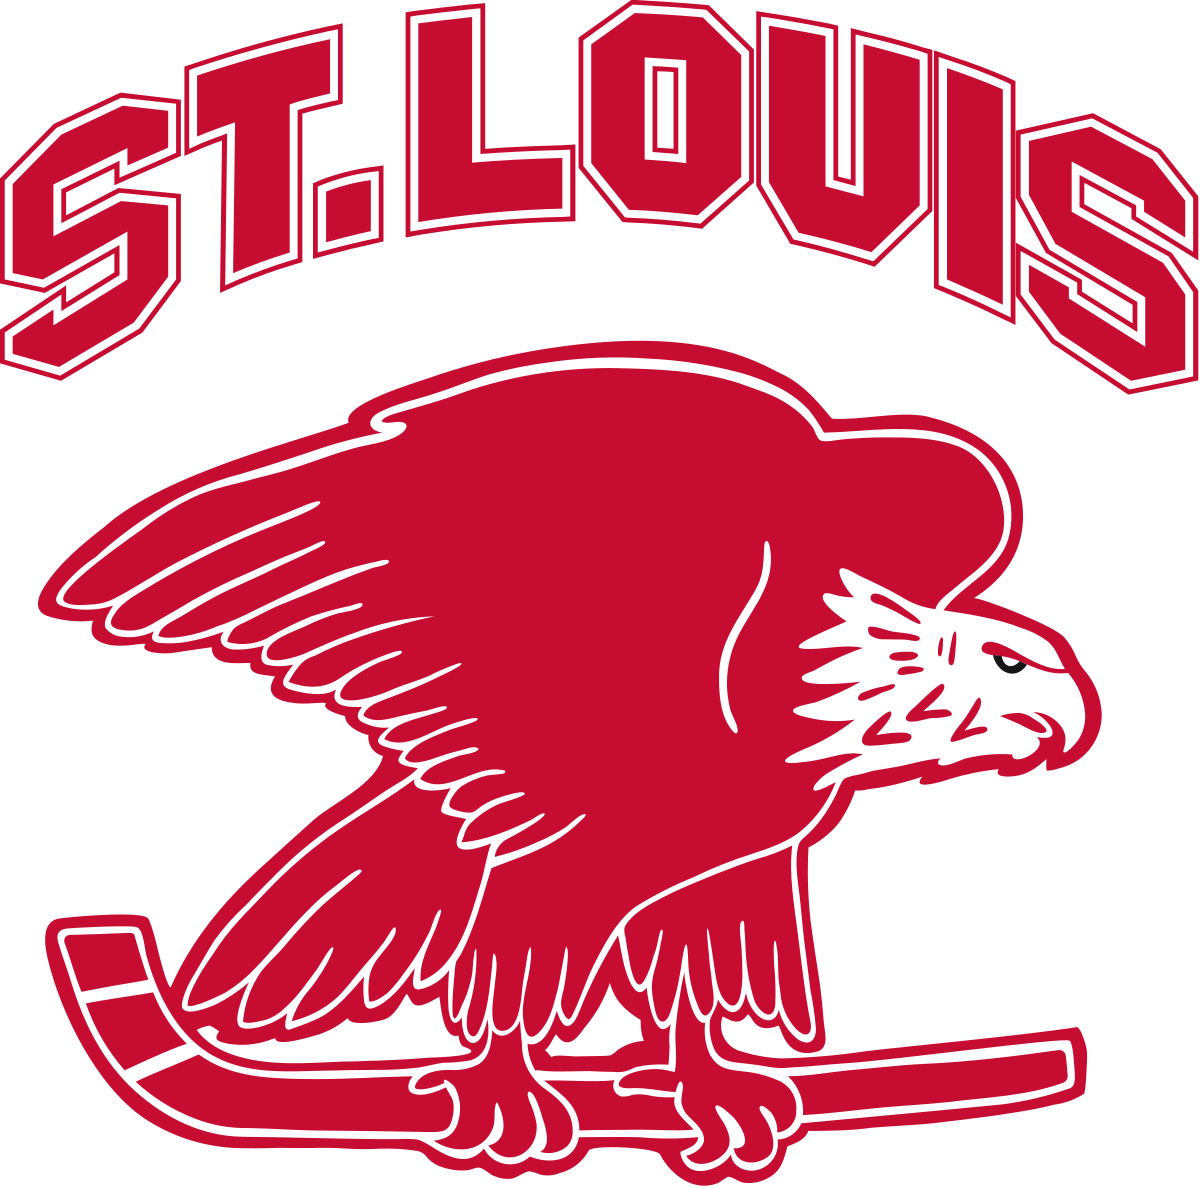 Hockey clipart charlie brown. St louis eagles wikipedia